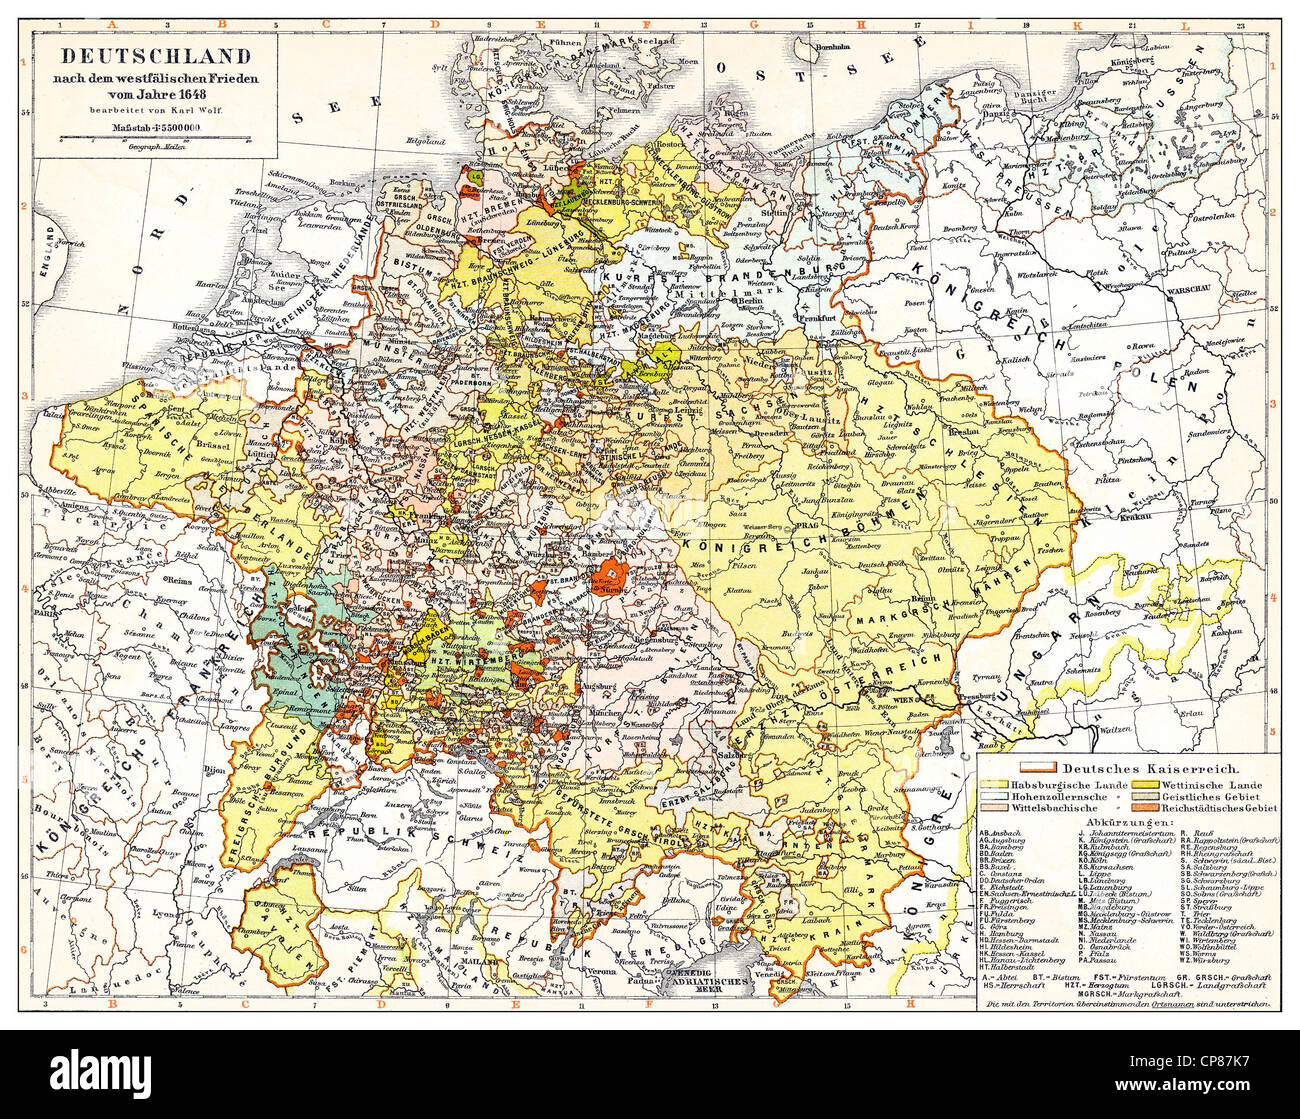 a history of the peace of westphalia The peace of westphalia refers to the pair of treaties (the treaty of münster and the treaty of osnabrück) signed in october and may 1648 which ended both the thirty years' war and the.